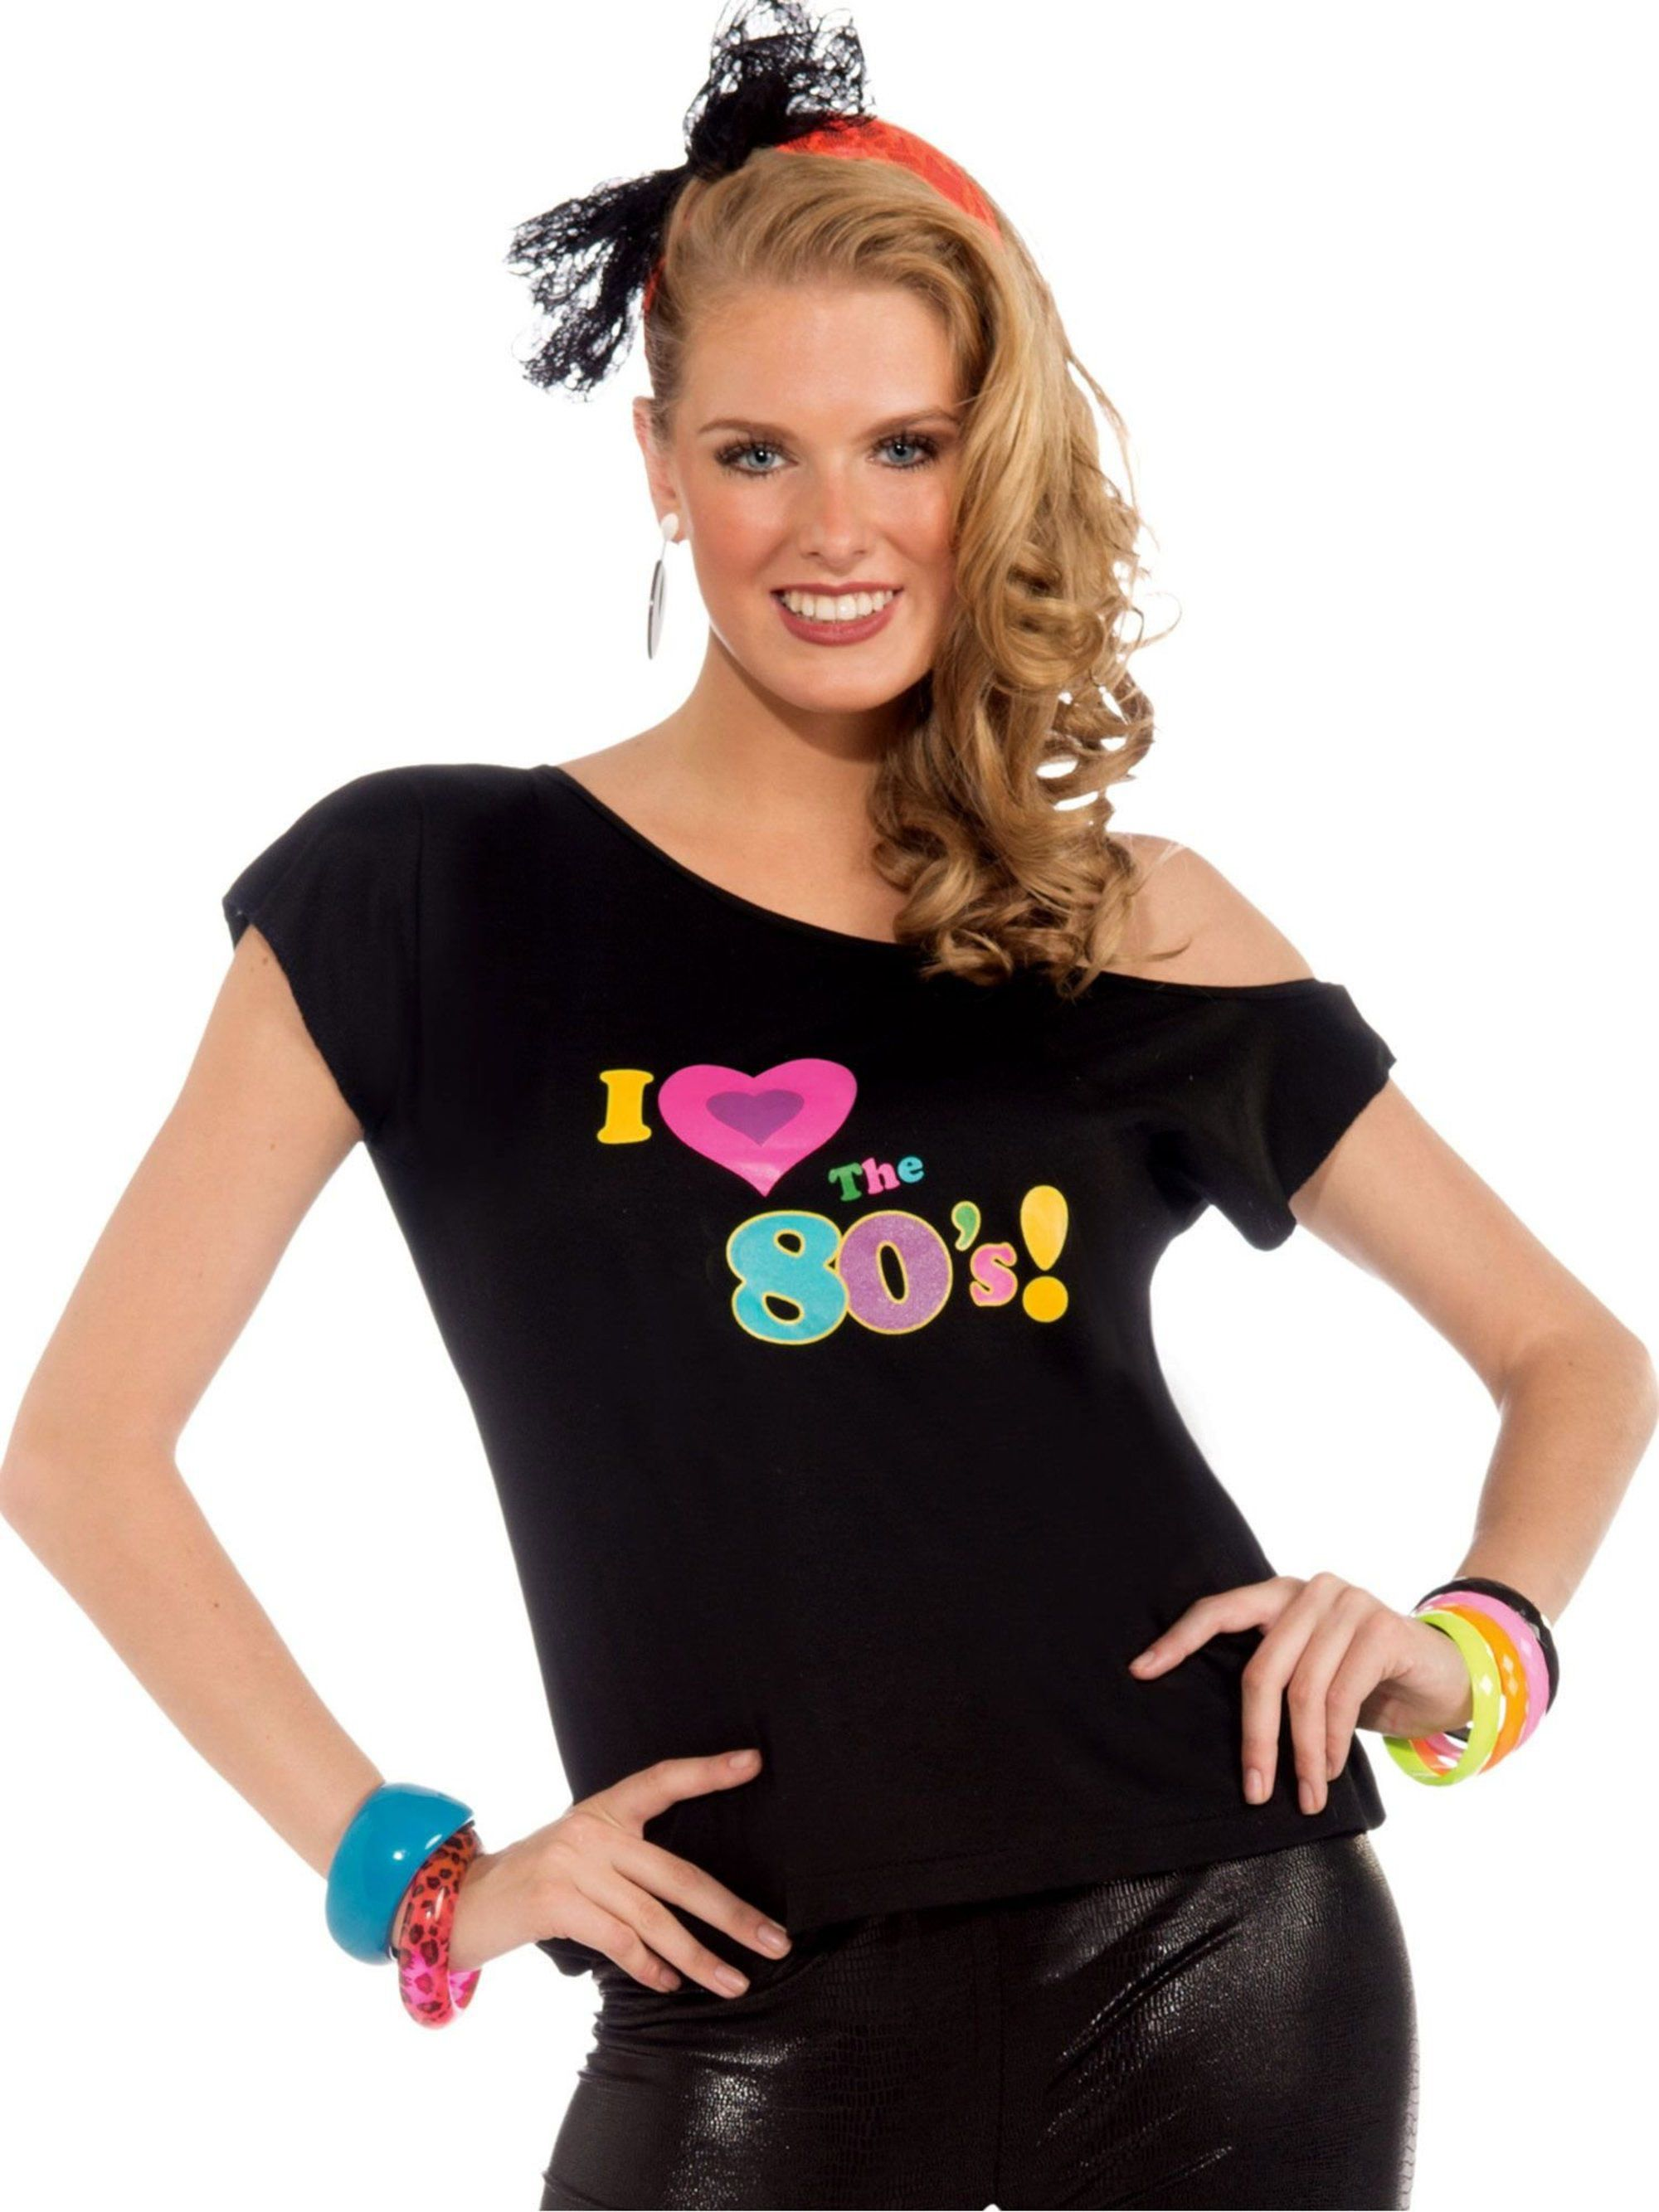 957499ea4bc ... 80's Shirt Adult Costume. View Larger Image · Larger View of Product ...